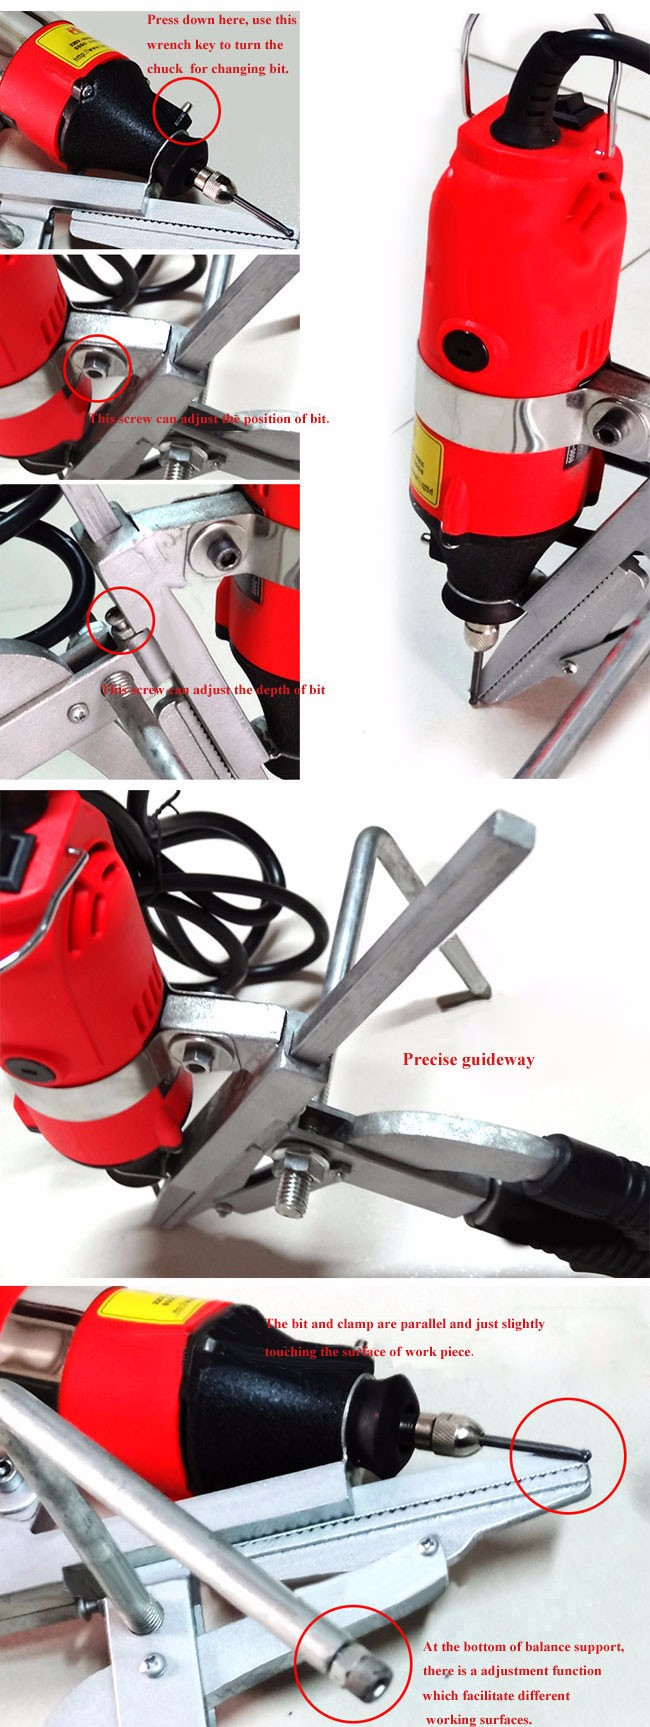 Hot Sale! Metal Letters Bender Bending Tool for 3D Channel Letters(Enhanced Version), 110V